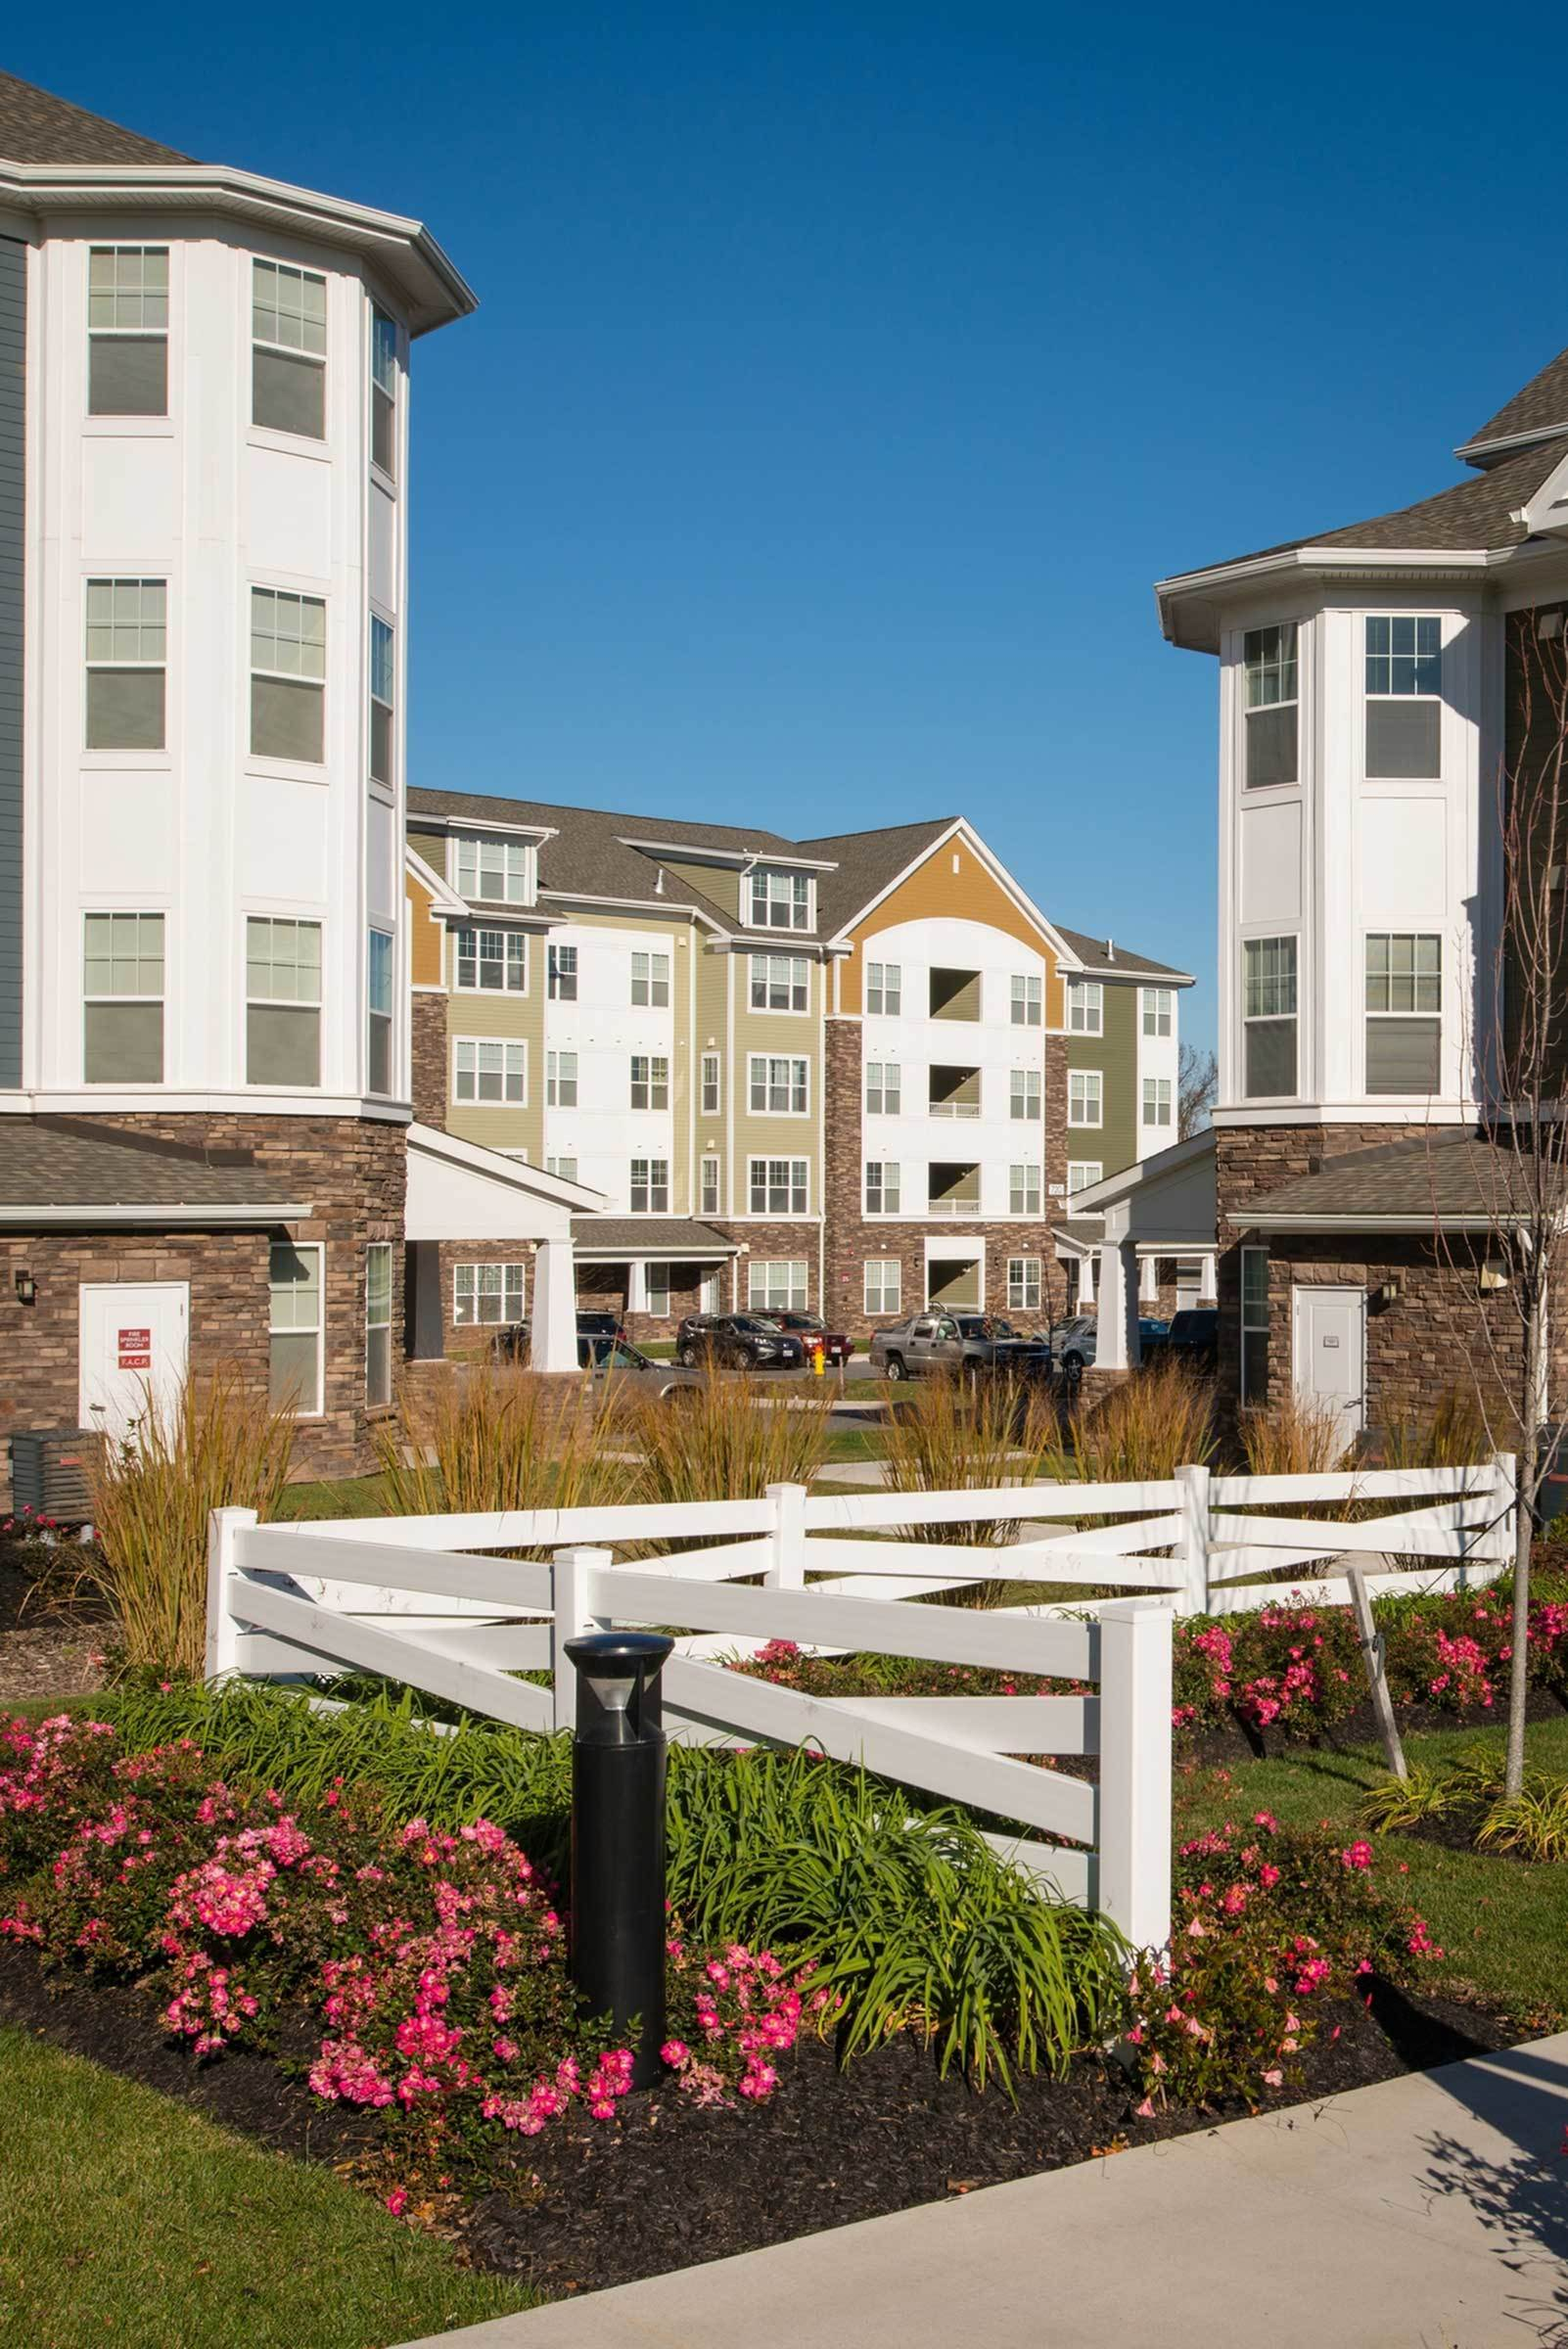 Community view with landscaping, flowers, and view of garden style apartments.